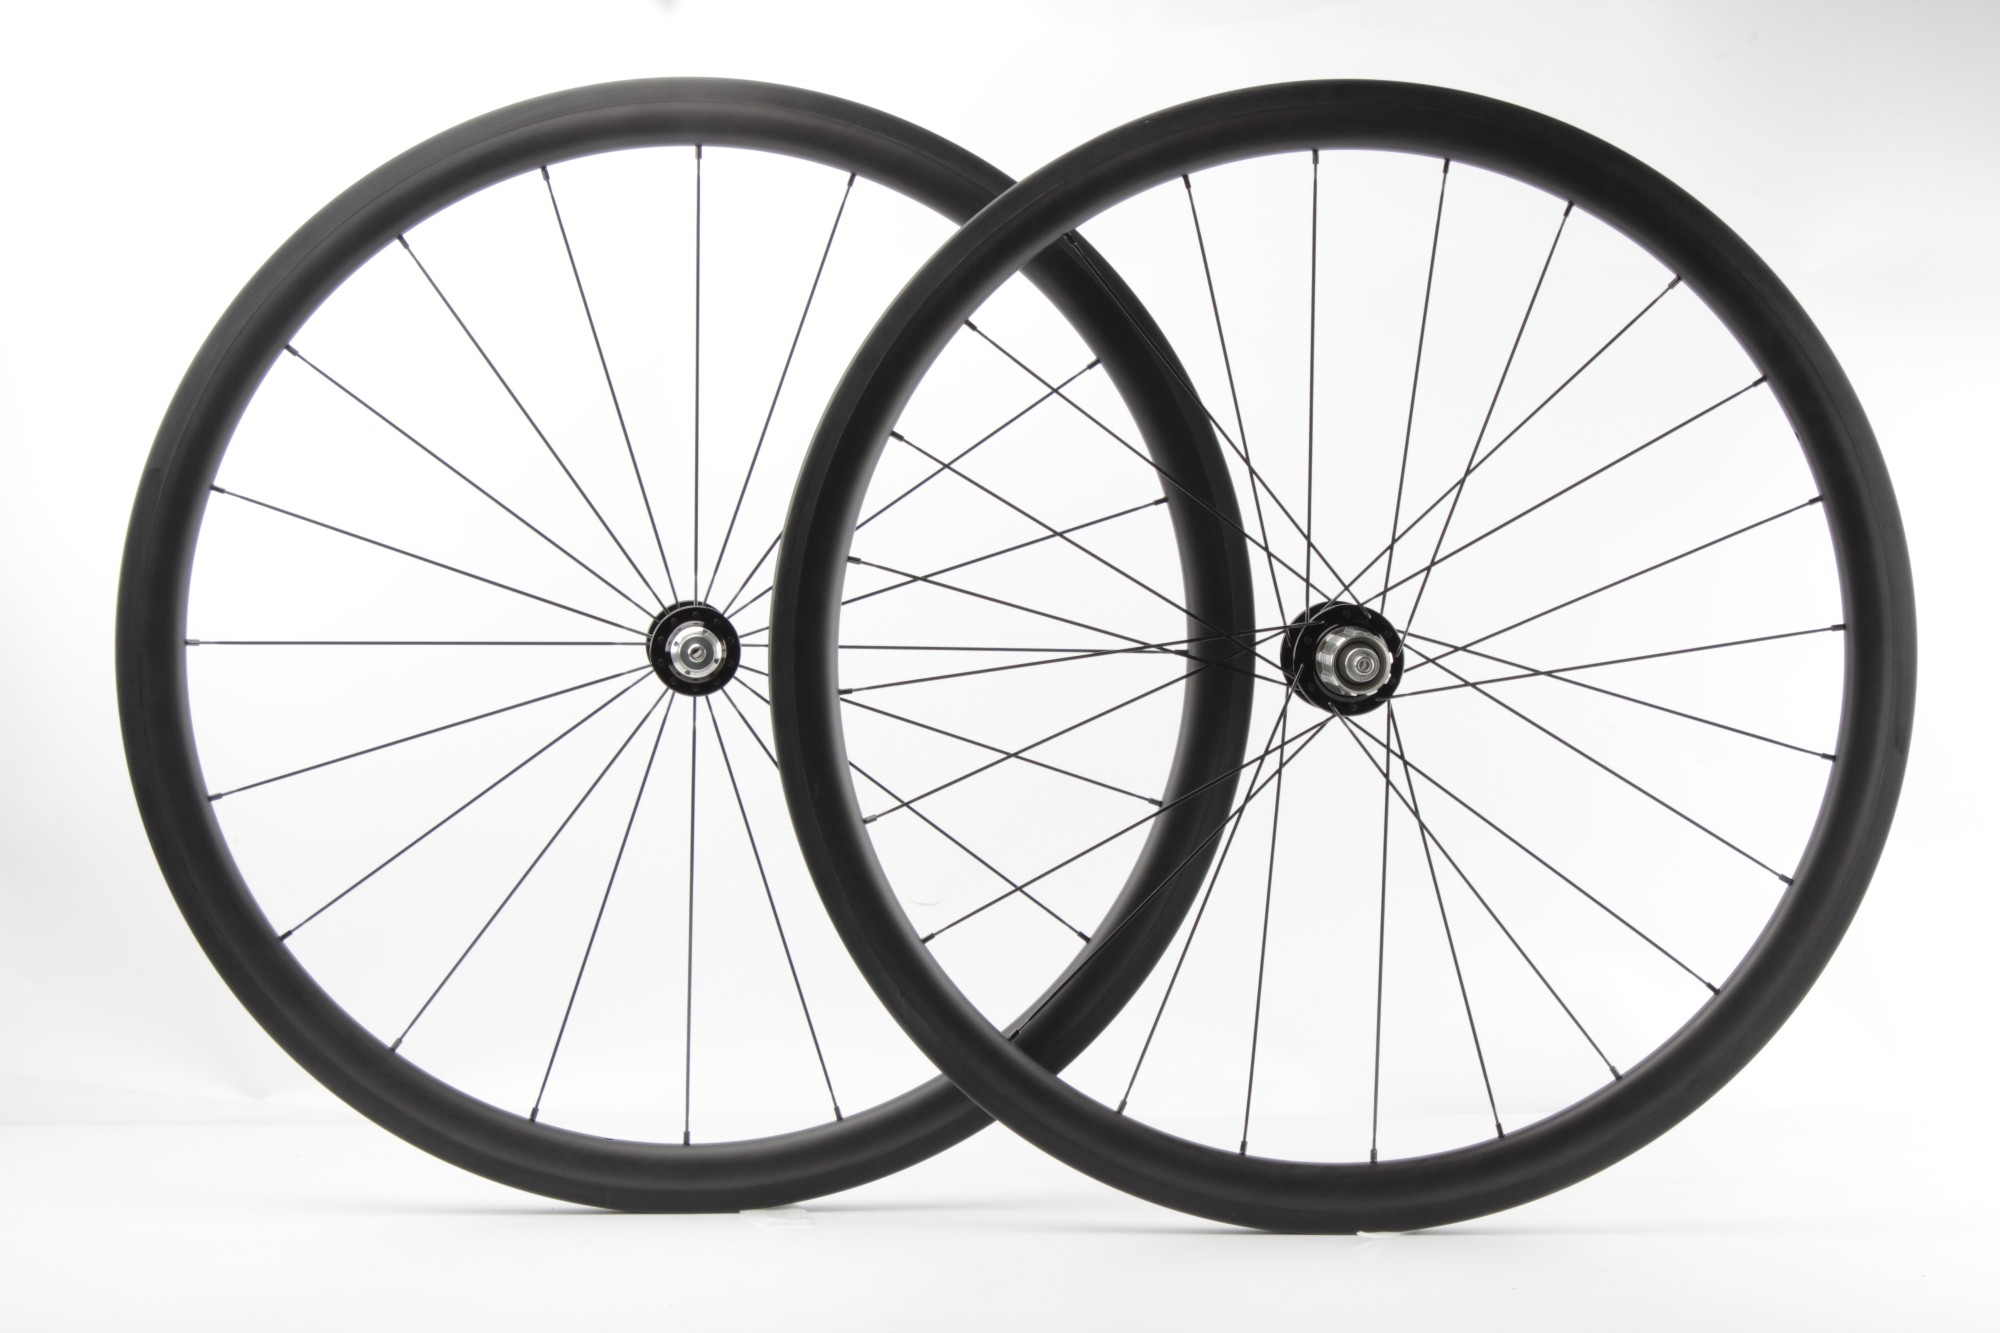 Chinese 700C carbon road wheelsets 38mm 25mm bicycle carbon wheels Chris King R45 hub and Sapim aero spokes, 1410g Manufacturers, Chinese 700C carbon road wheelsets 38mm 25mm bicycle carbon wheels Chris King R45 hub and Sapim aero spokes, 1410g Factory, Supply Chinese 700C carbon road wheelsets 38mm 25mm bicycle carbon wheels Chris King R45 hub and Sapim aero spokes, 1410g